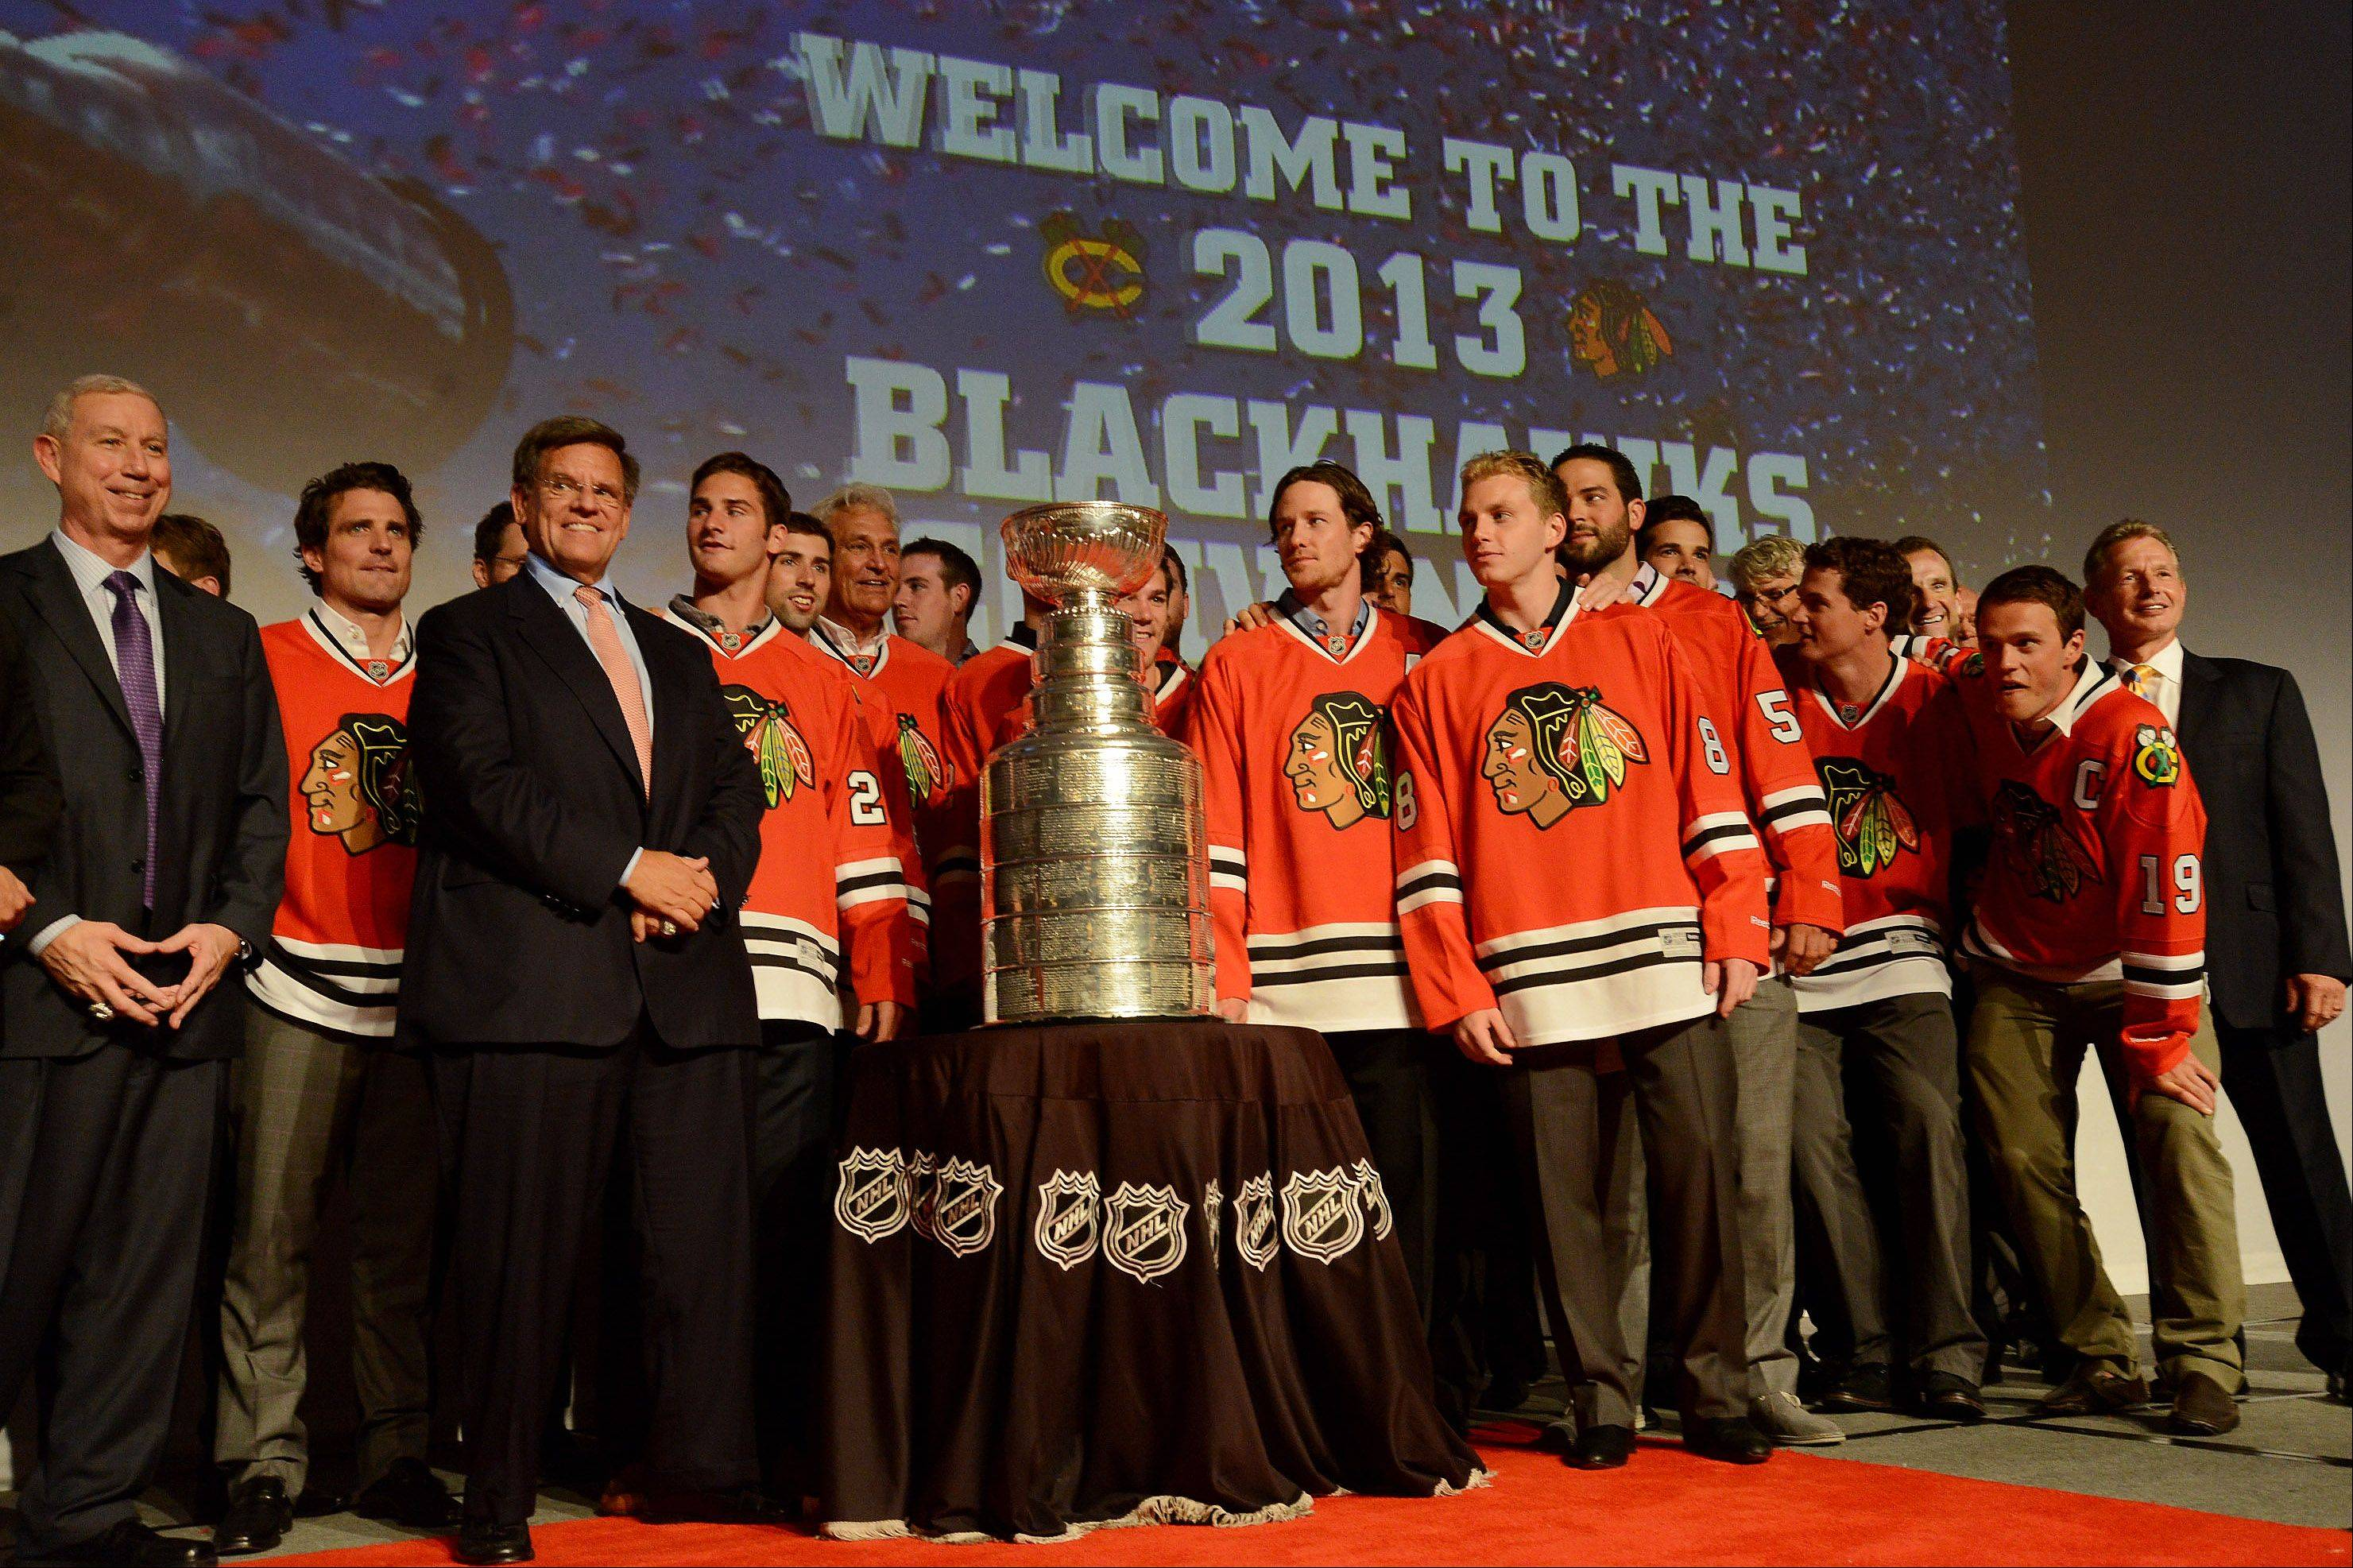 A team photo was taken with the Stanley Cup.